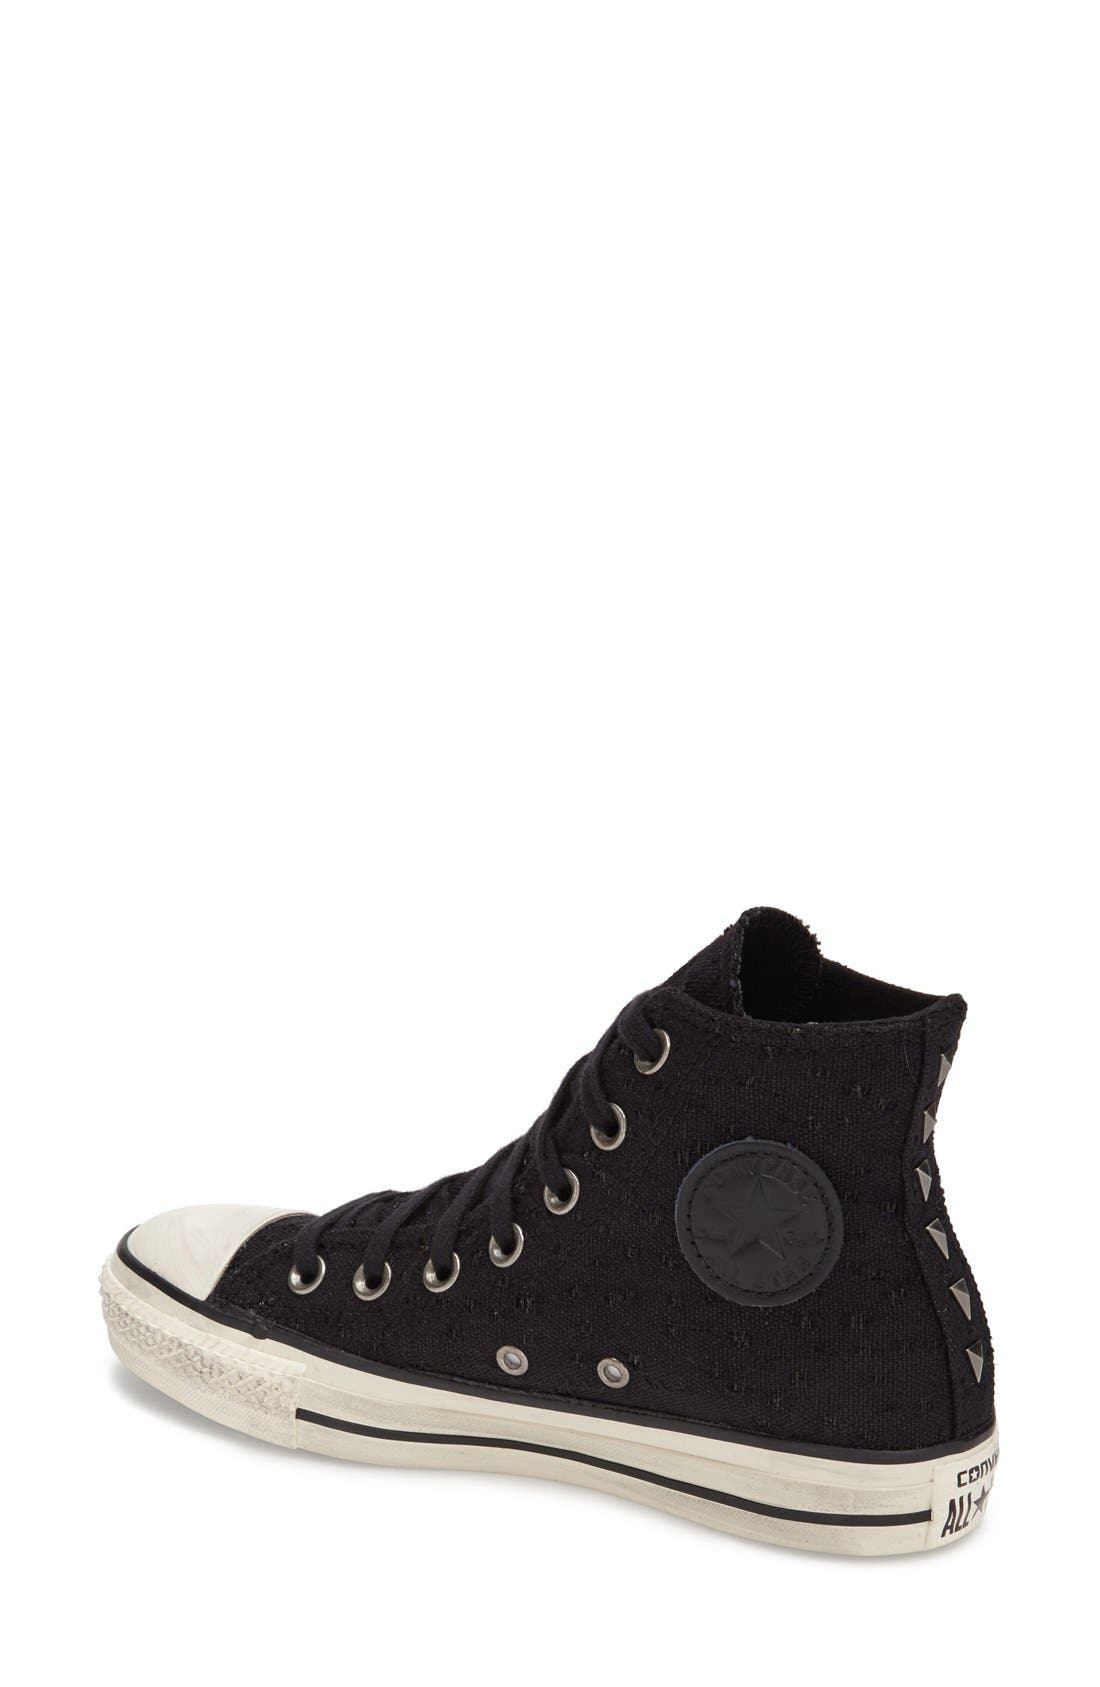 Alternate Image 2  - Converse Chuck Taylor® All Star® 'Star Hardware' High Top Sneaker (Women)